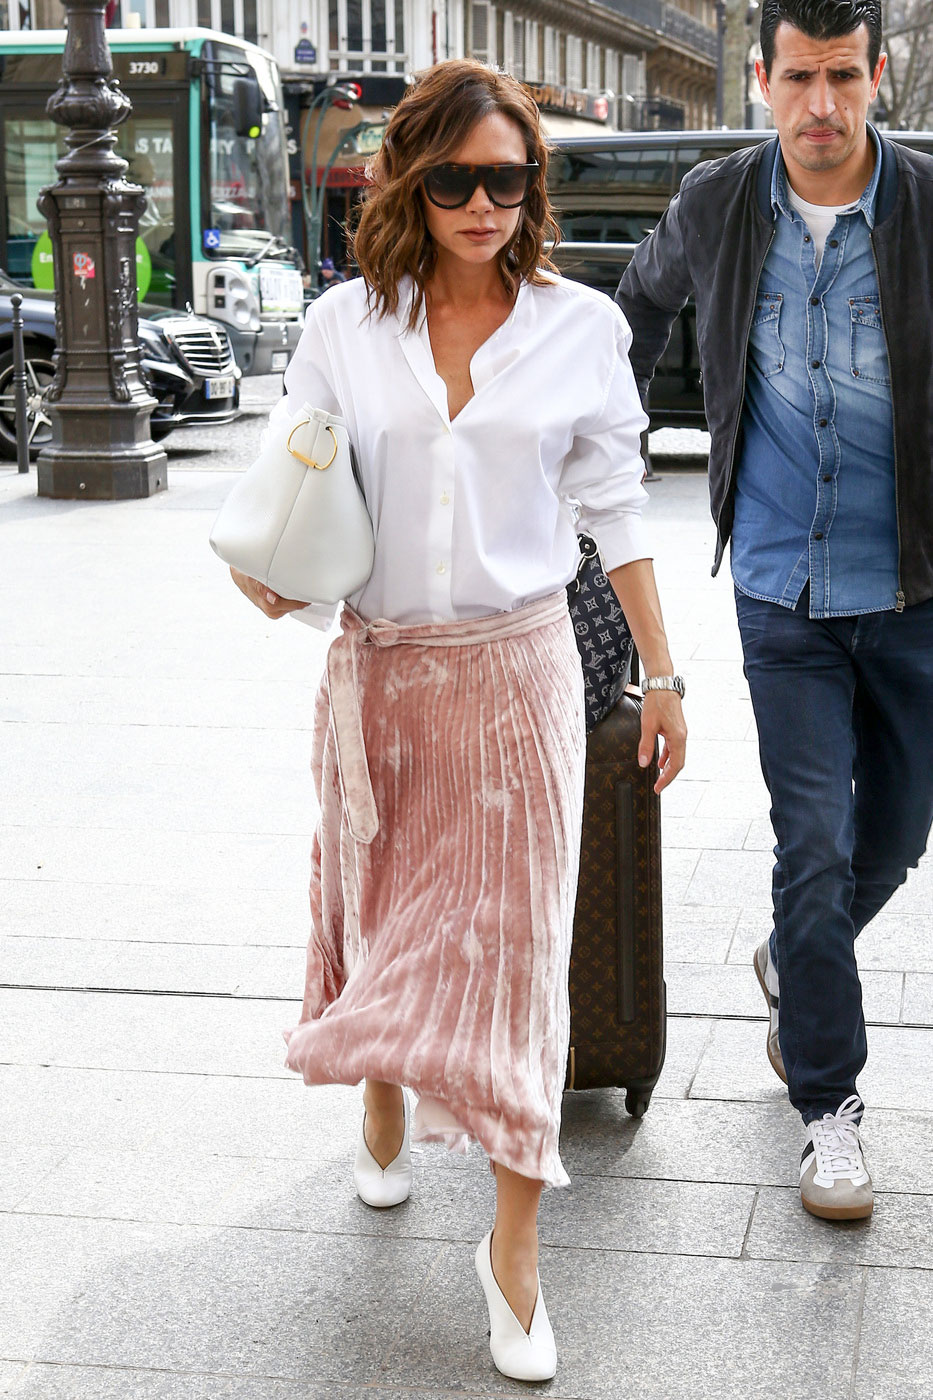 bb5f1a10c Victoria Beckham's Pink Pleated Skirt and White Blouse Look for Less ...